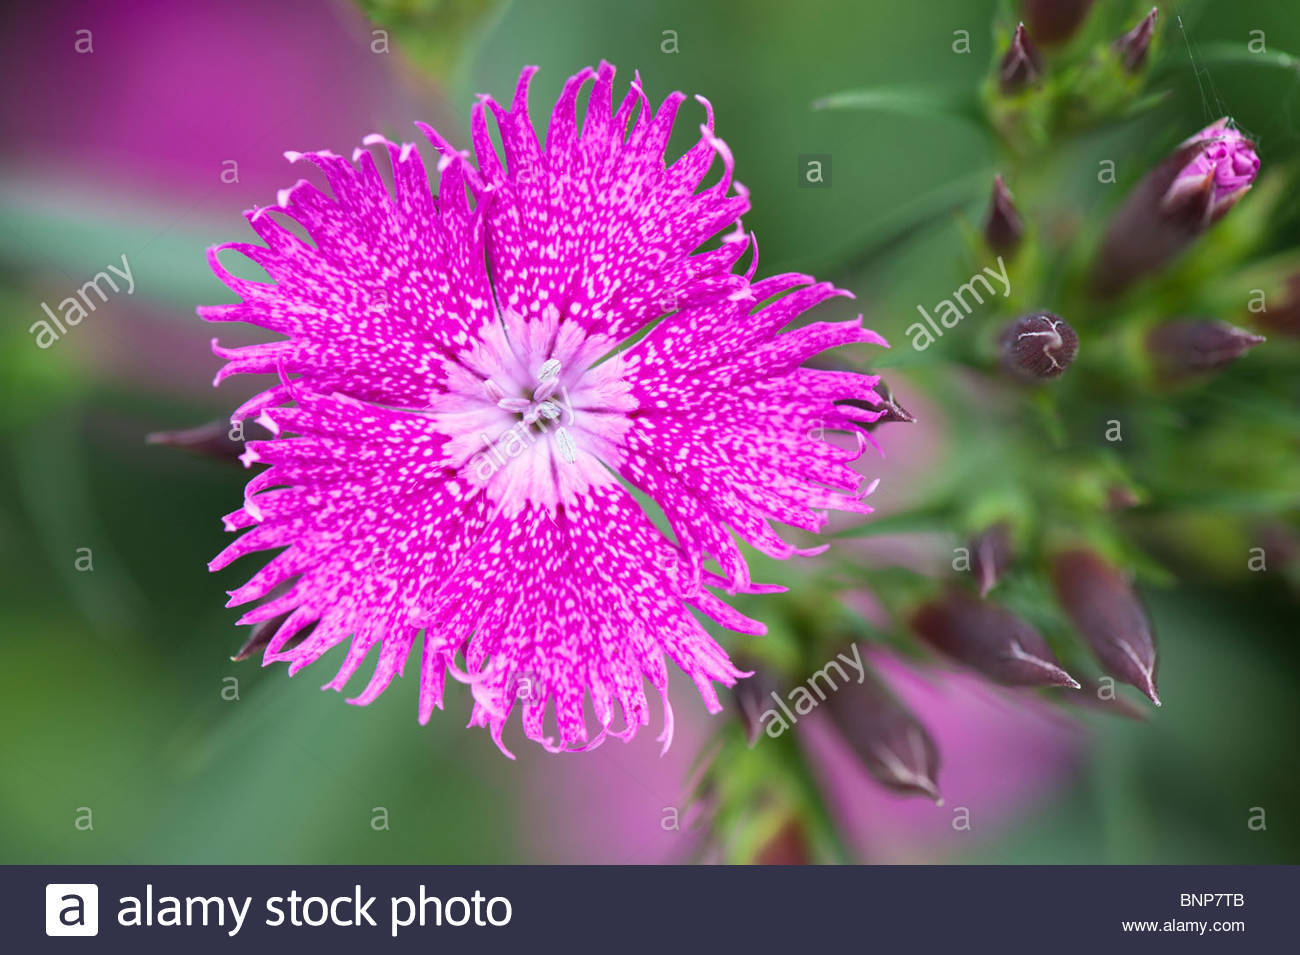 Dianthus barbatus integerrima Bouquet Purple Sweet William flower